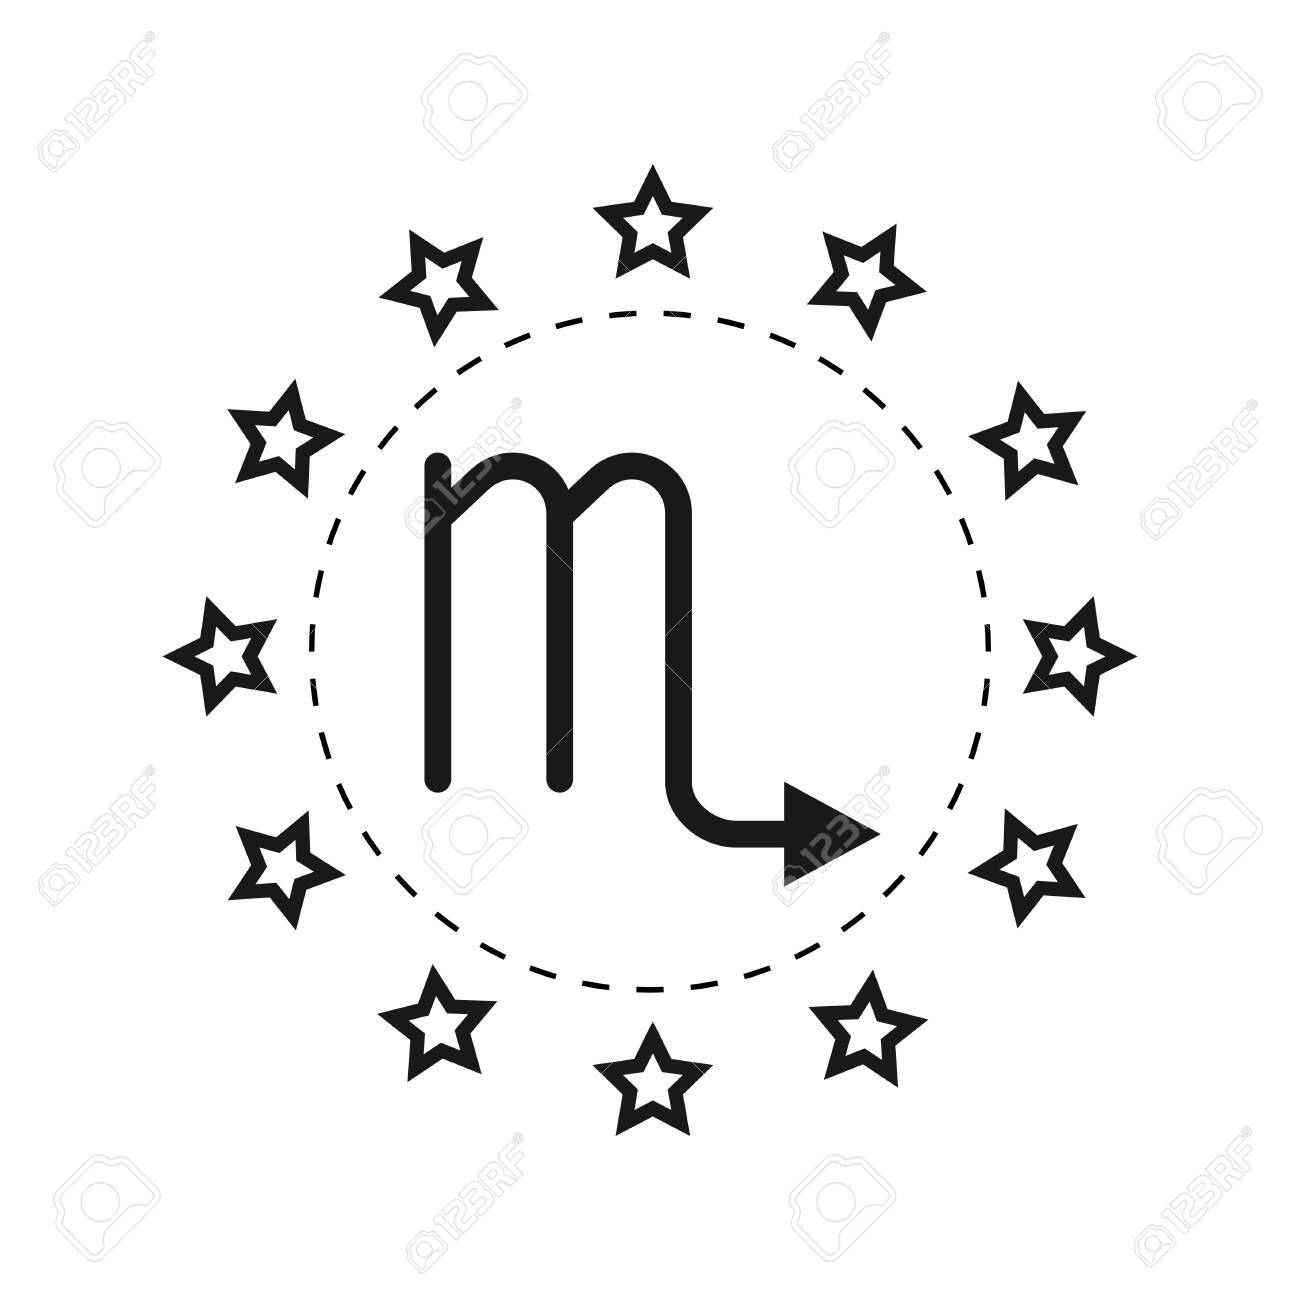 Scorpio sign of the zodiac flat symbol horoscope and predictions scorpio sign of the zodiac flat symbol horoscope and predictions vector object for buycottarizona Image collections